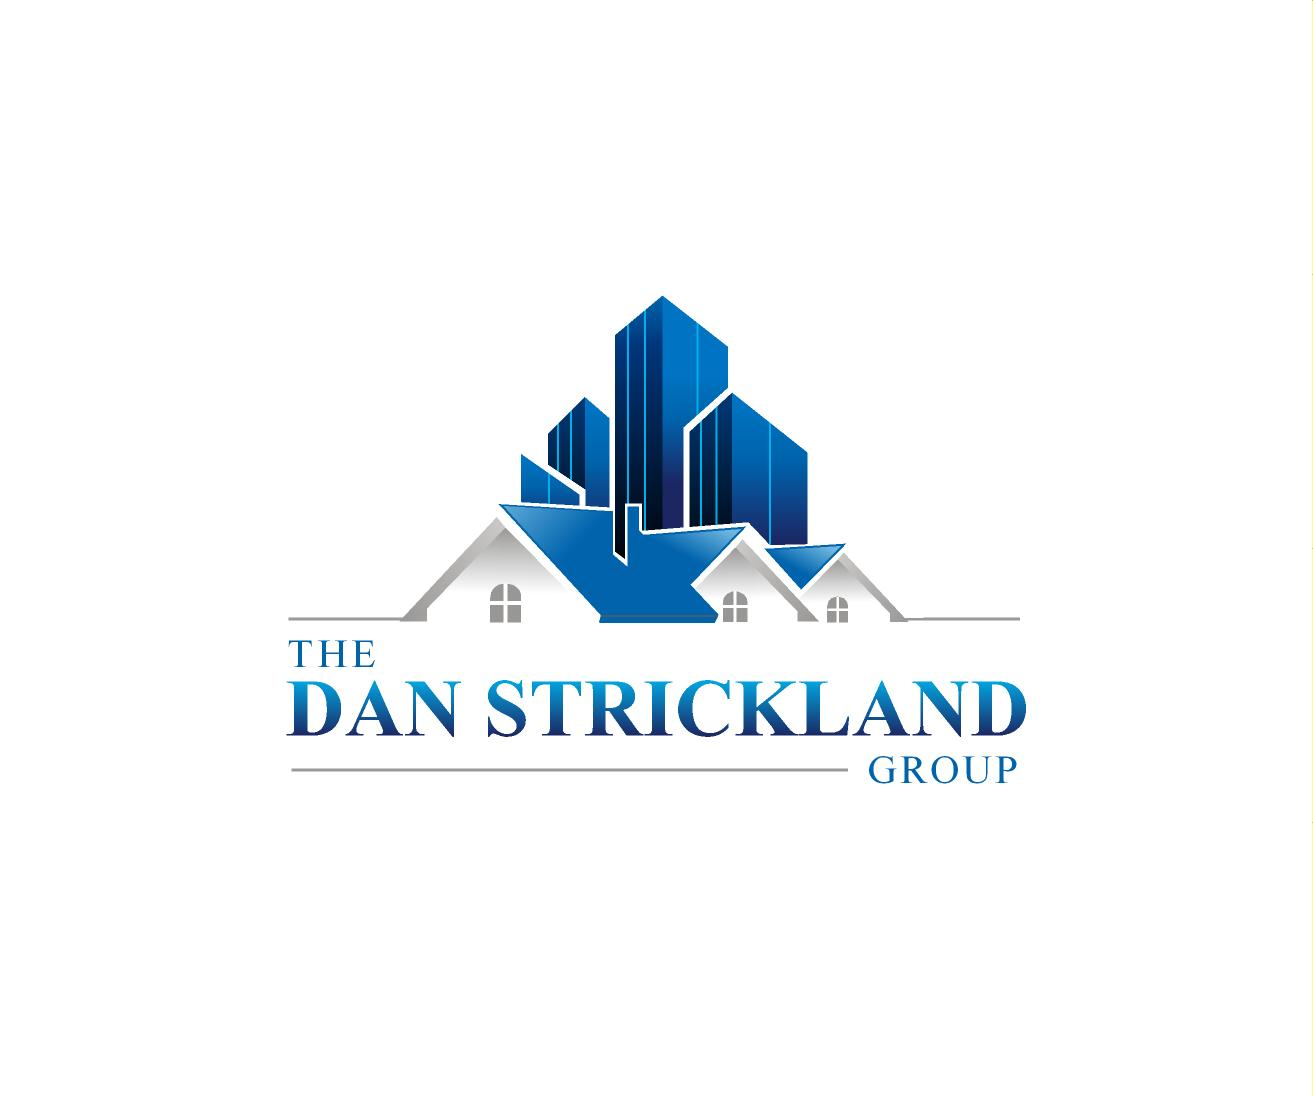 Logo Design by ZAYYADI AHMAD - Entry No. 375 in the Logo Design Contest Creative Logo Design for The Dan Strickland Group.